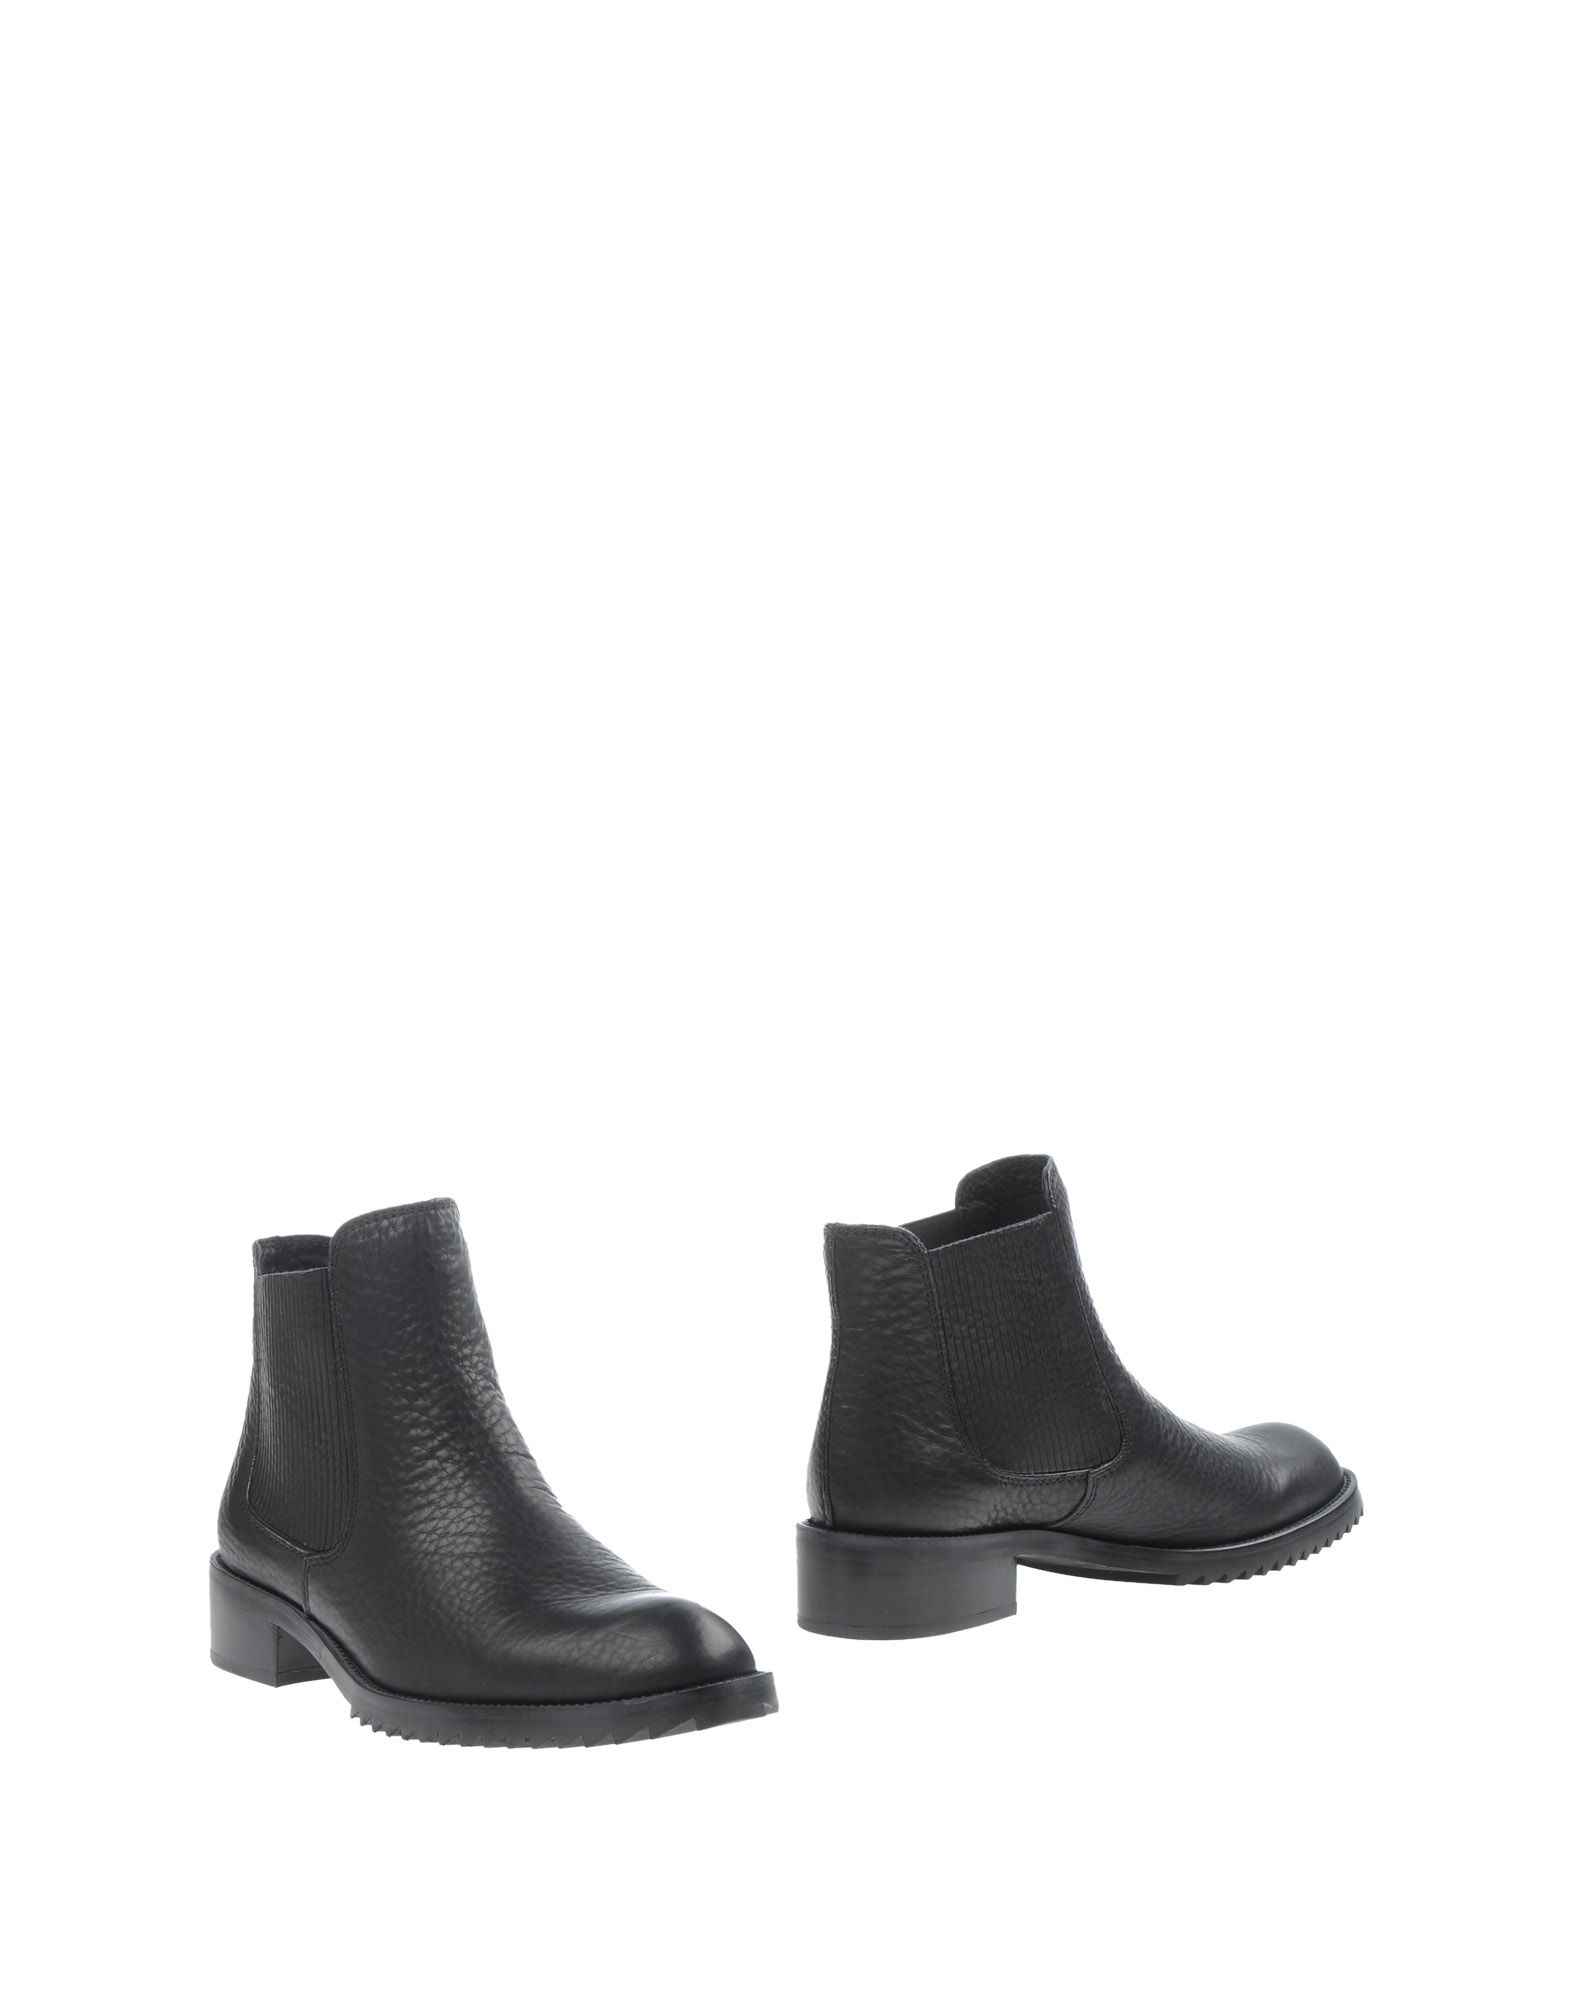 pedro garcia ankle boots in black save 10 lyst